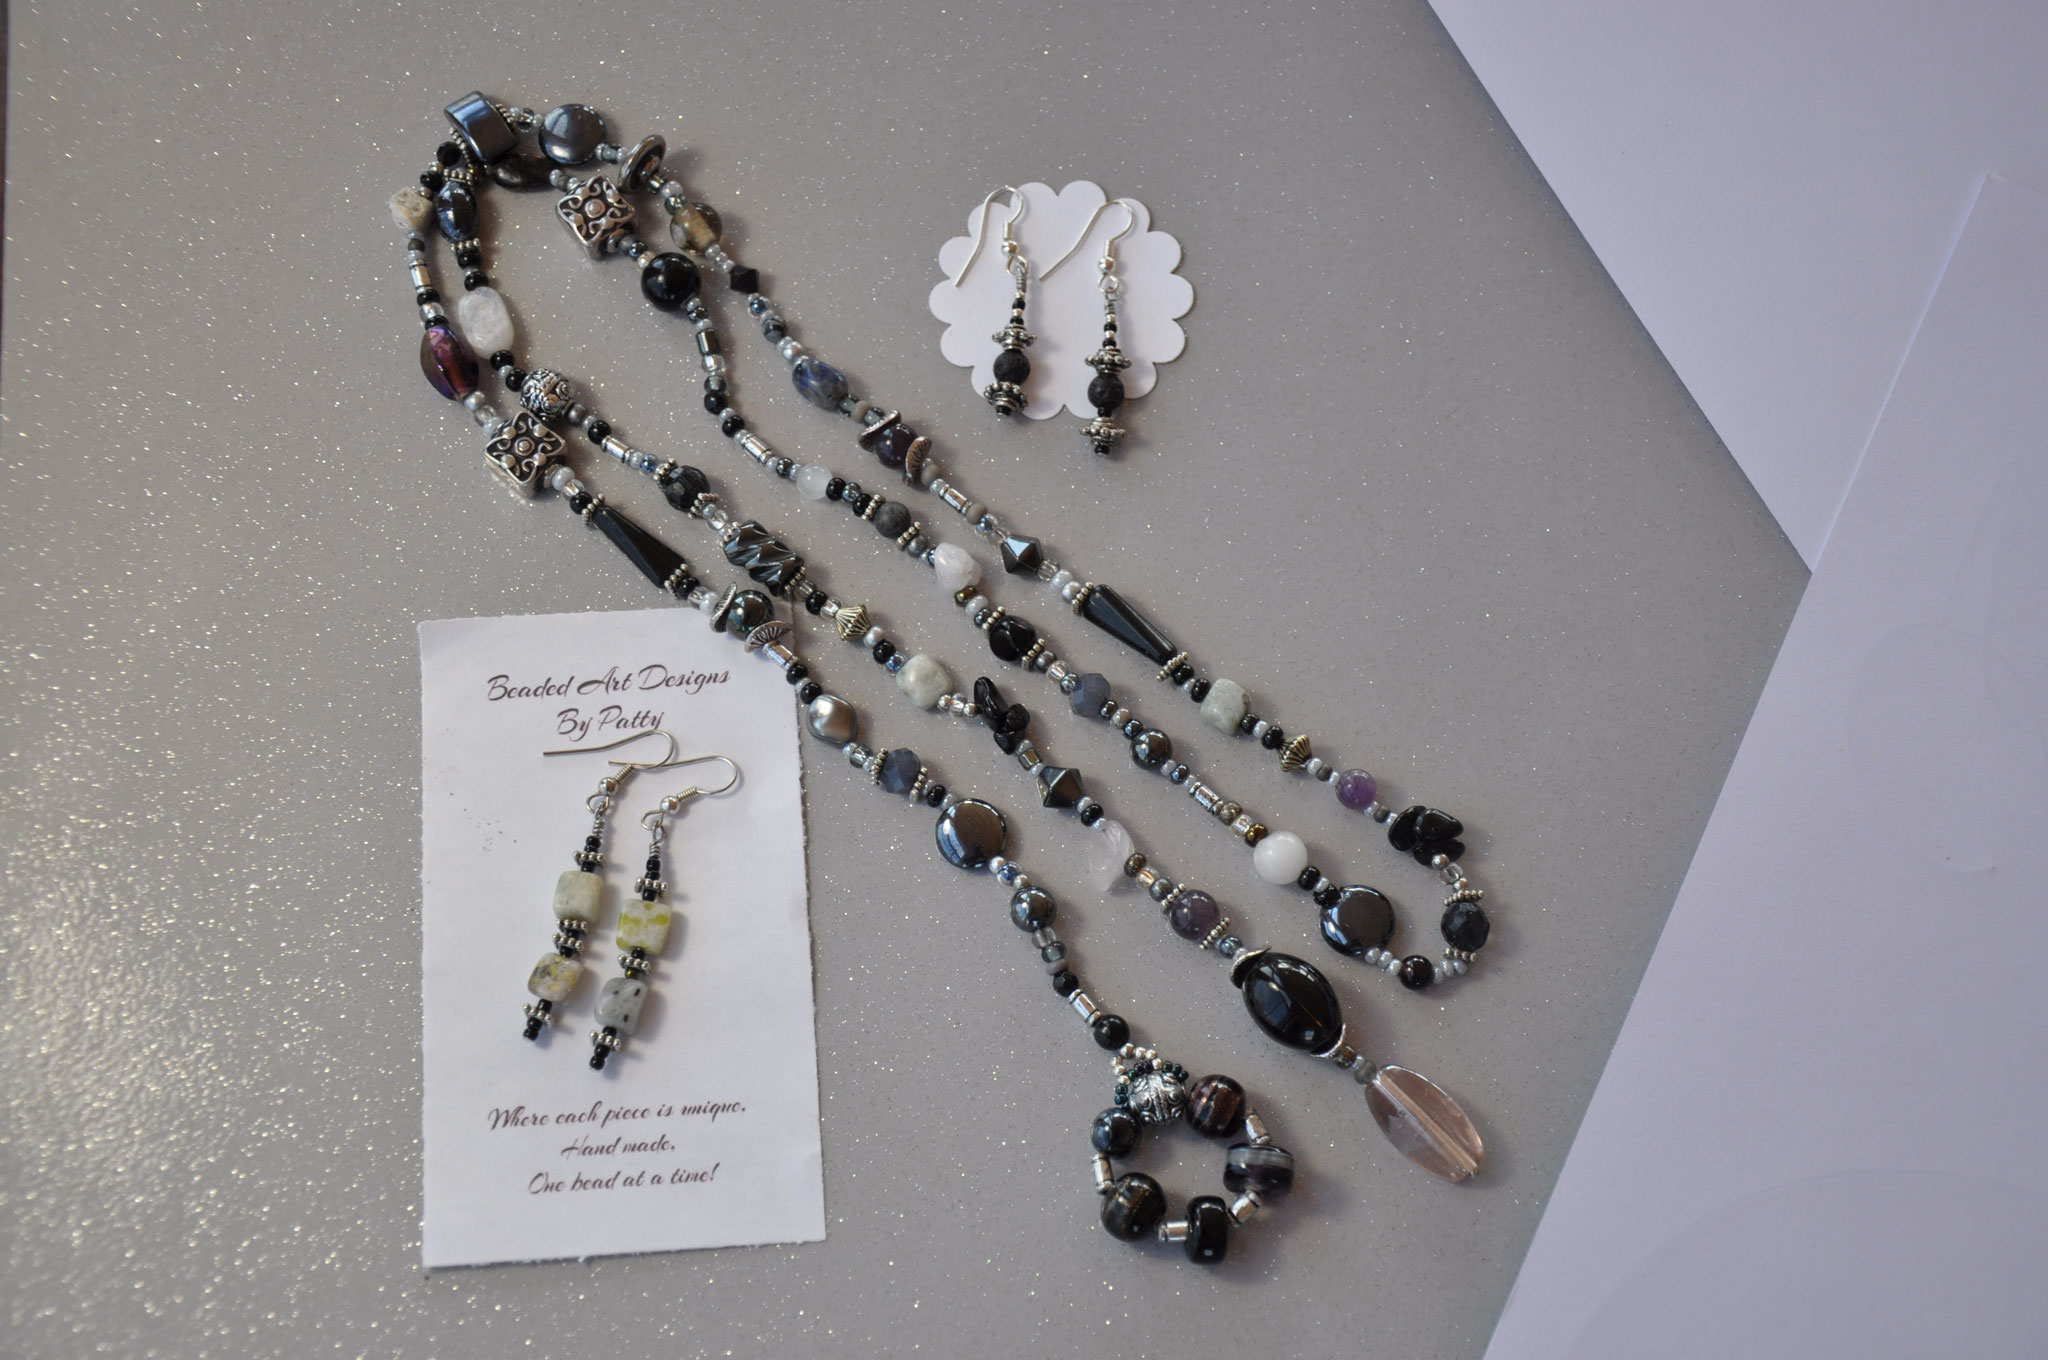 BLACK BEAUTY LARIAT Lariat Necklace: $60.00 Beads: Gemstones, Metal, Glass and Seed, 38  inches long - can be worn single for long or doubled up for choker type